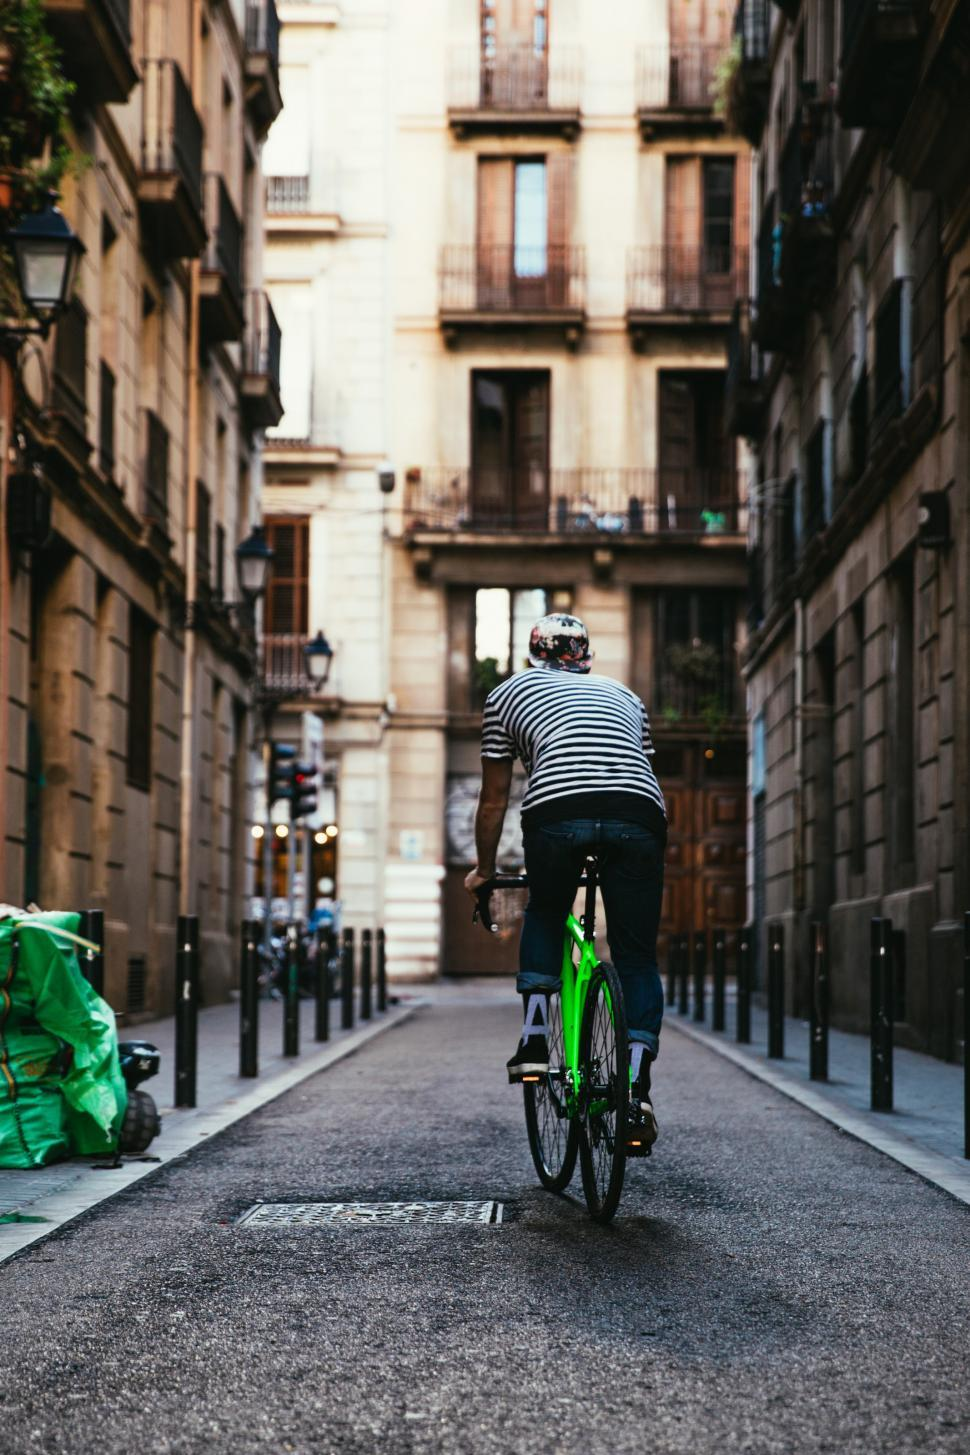 Download Free Stock Photo of Rear view of a biker riding a green bicycle